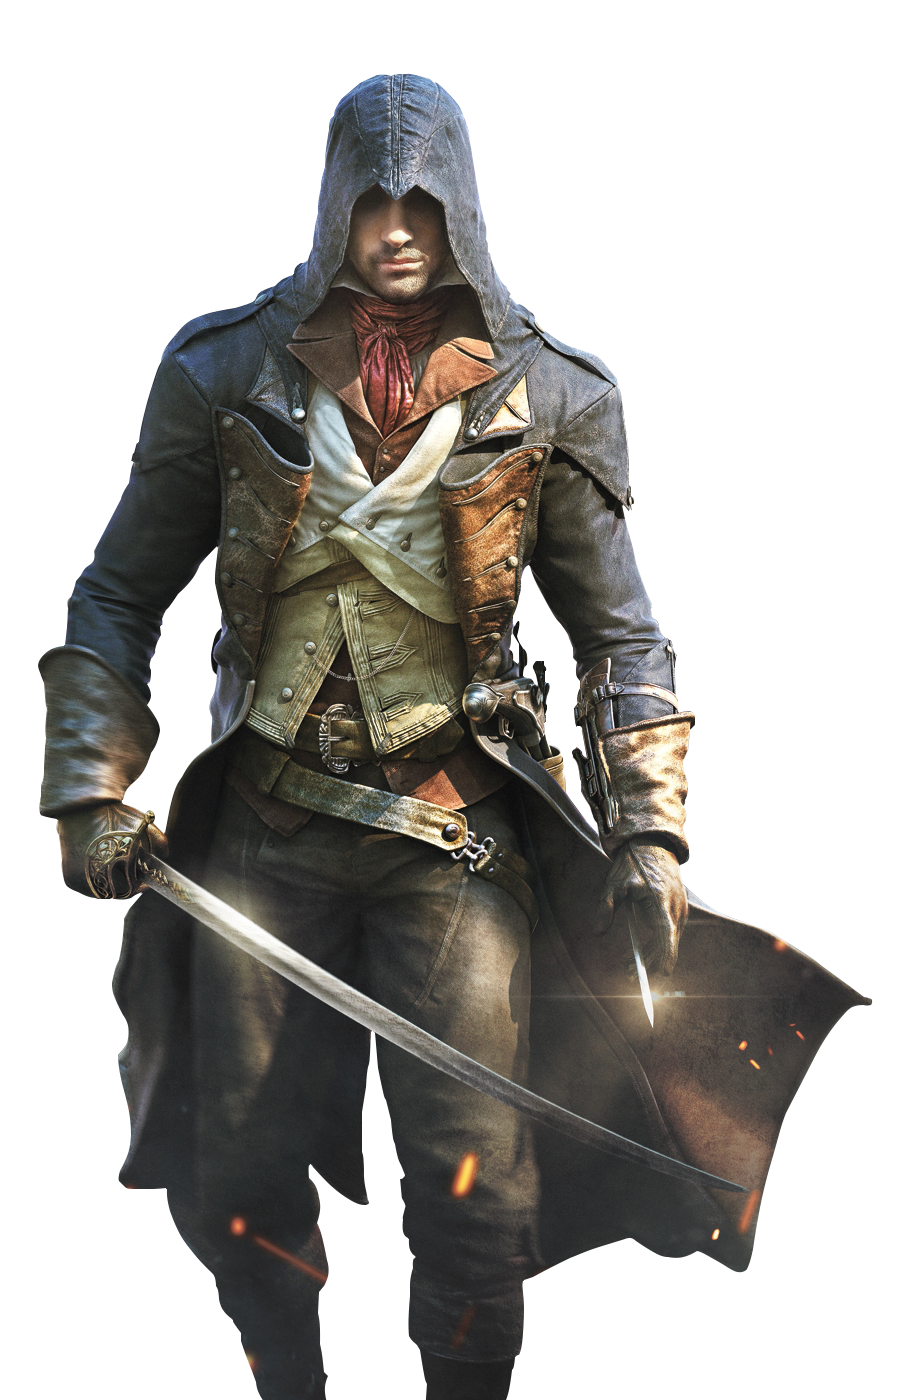 Assassinu Creed Warrior Picture With Sword In Hand Png 27537